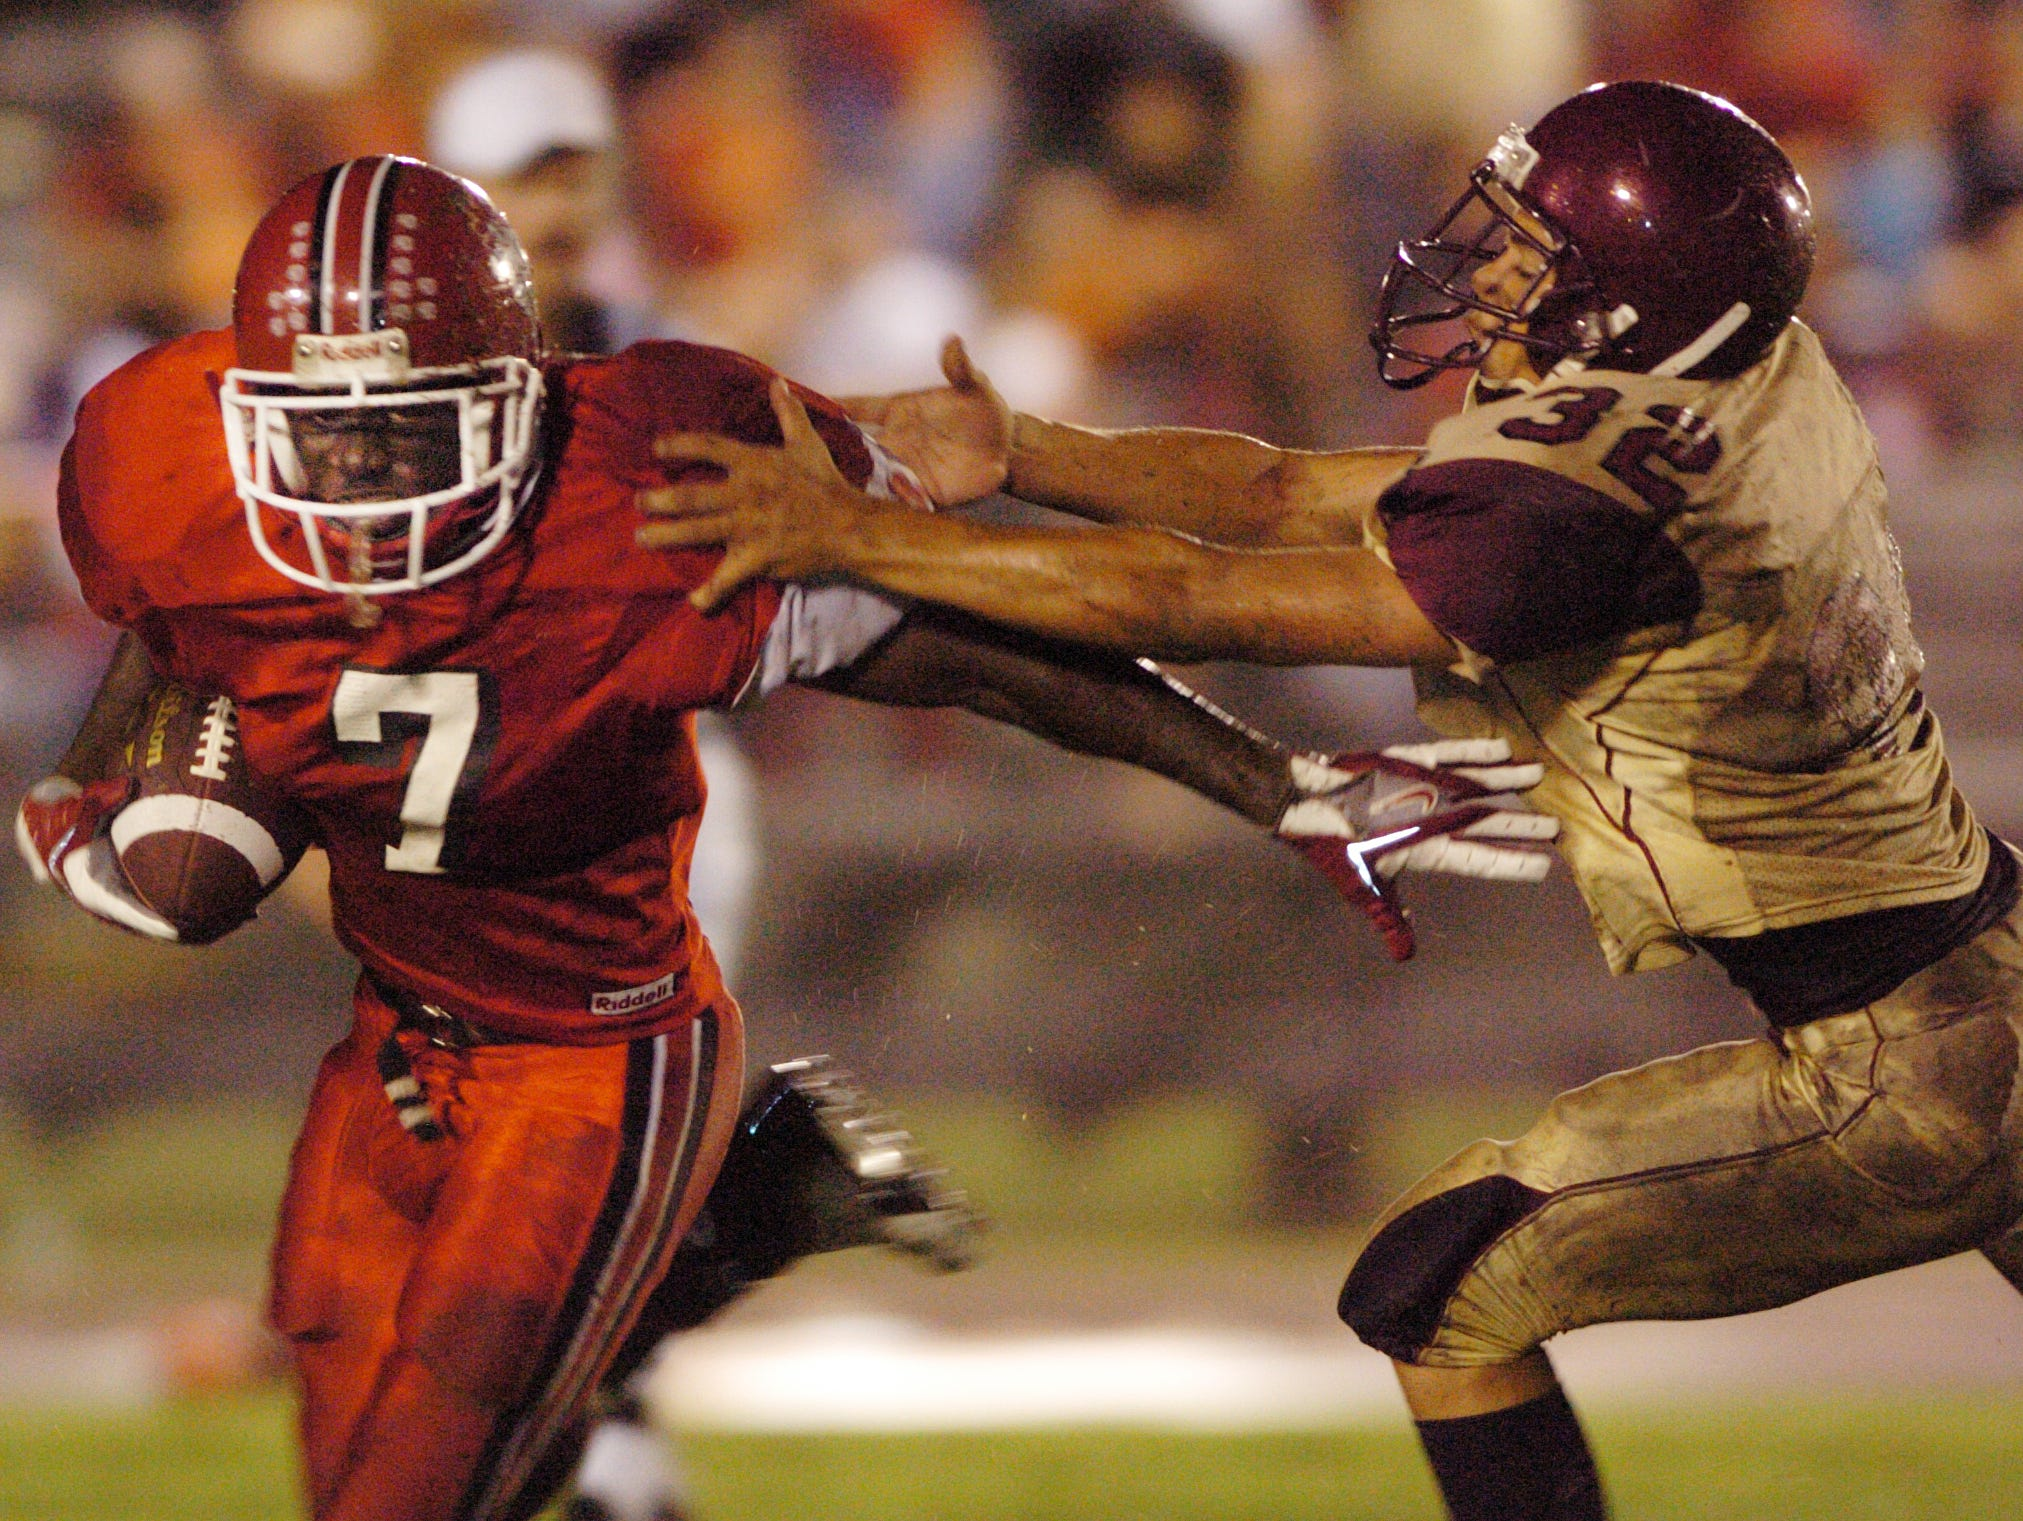 Riverdale' West Anderson tries to run down Noel Devine of North Fort Myers during the first half of action in North Fort Myers during a game in 2005.